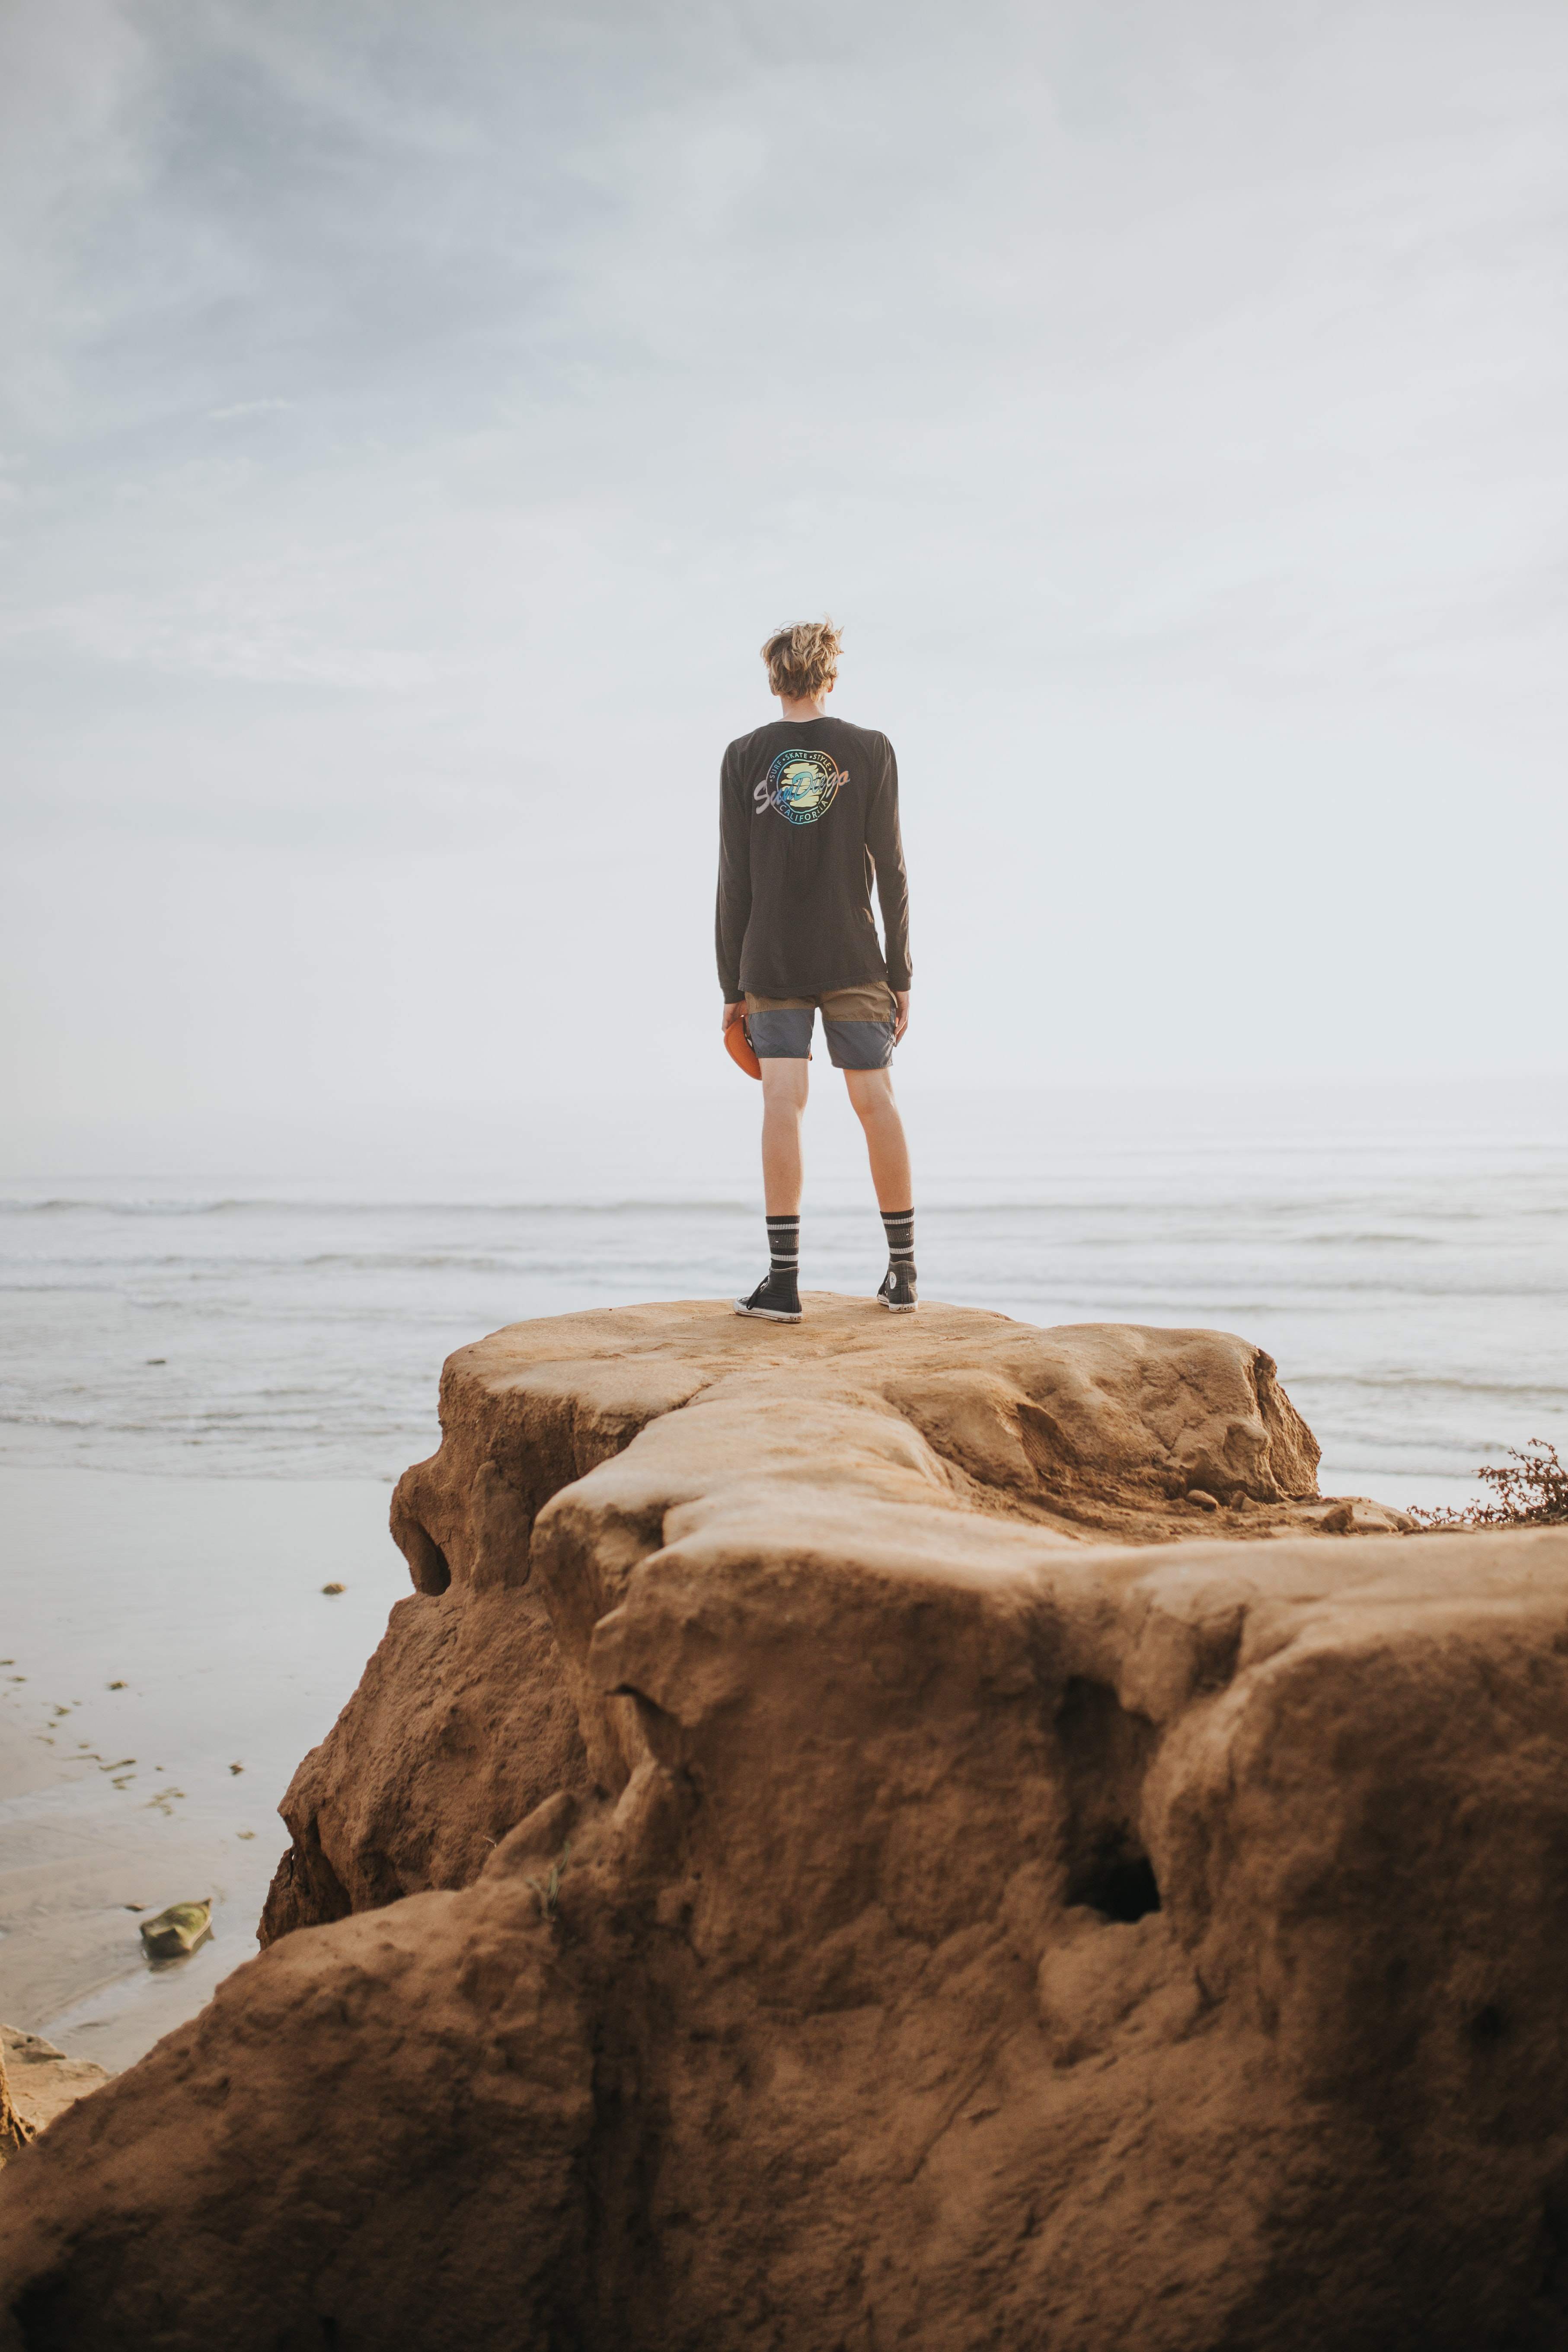 person standing on rock formation looking to sea during daytime